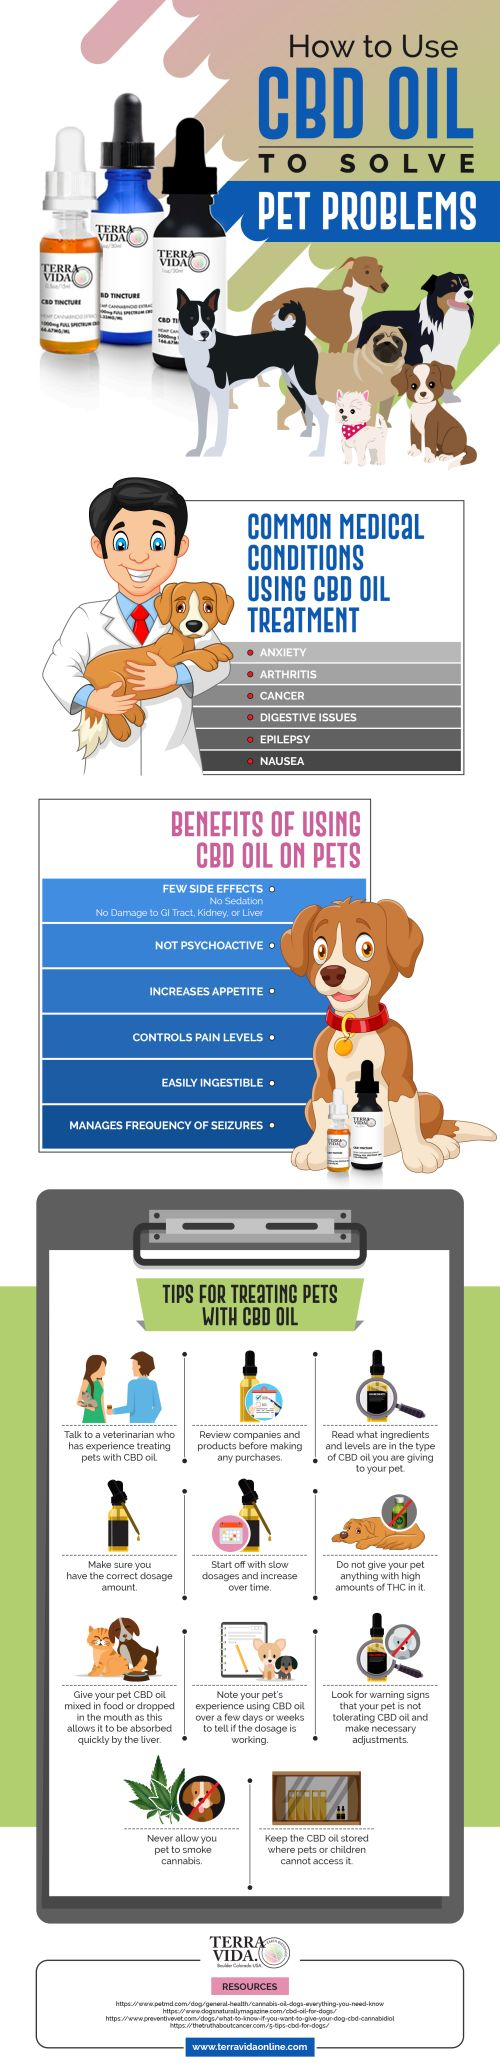 Using CBD Oil to Solve Your Pet Problems